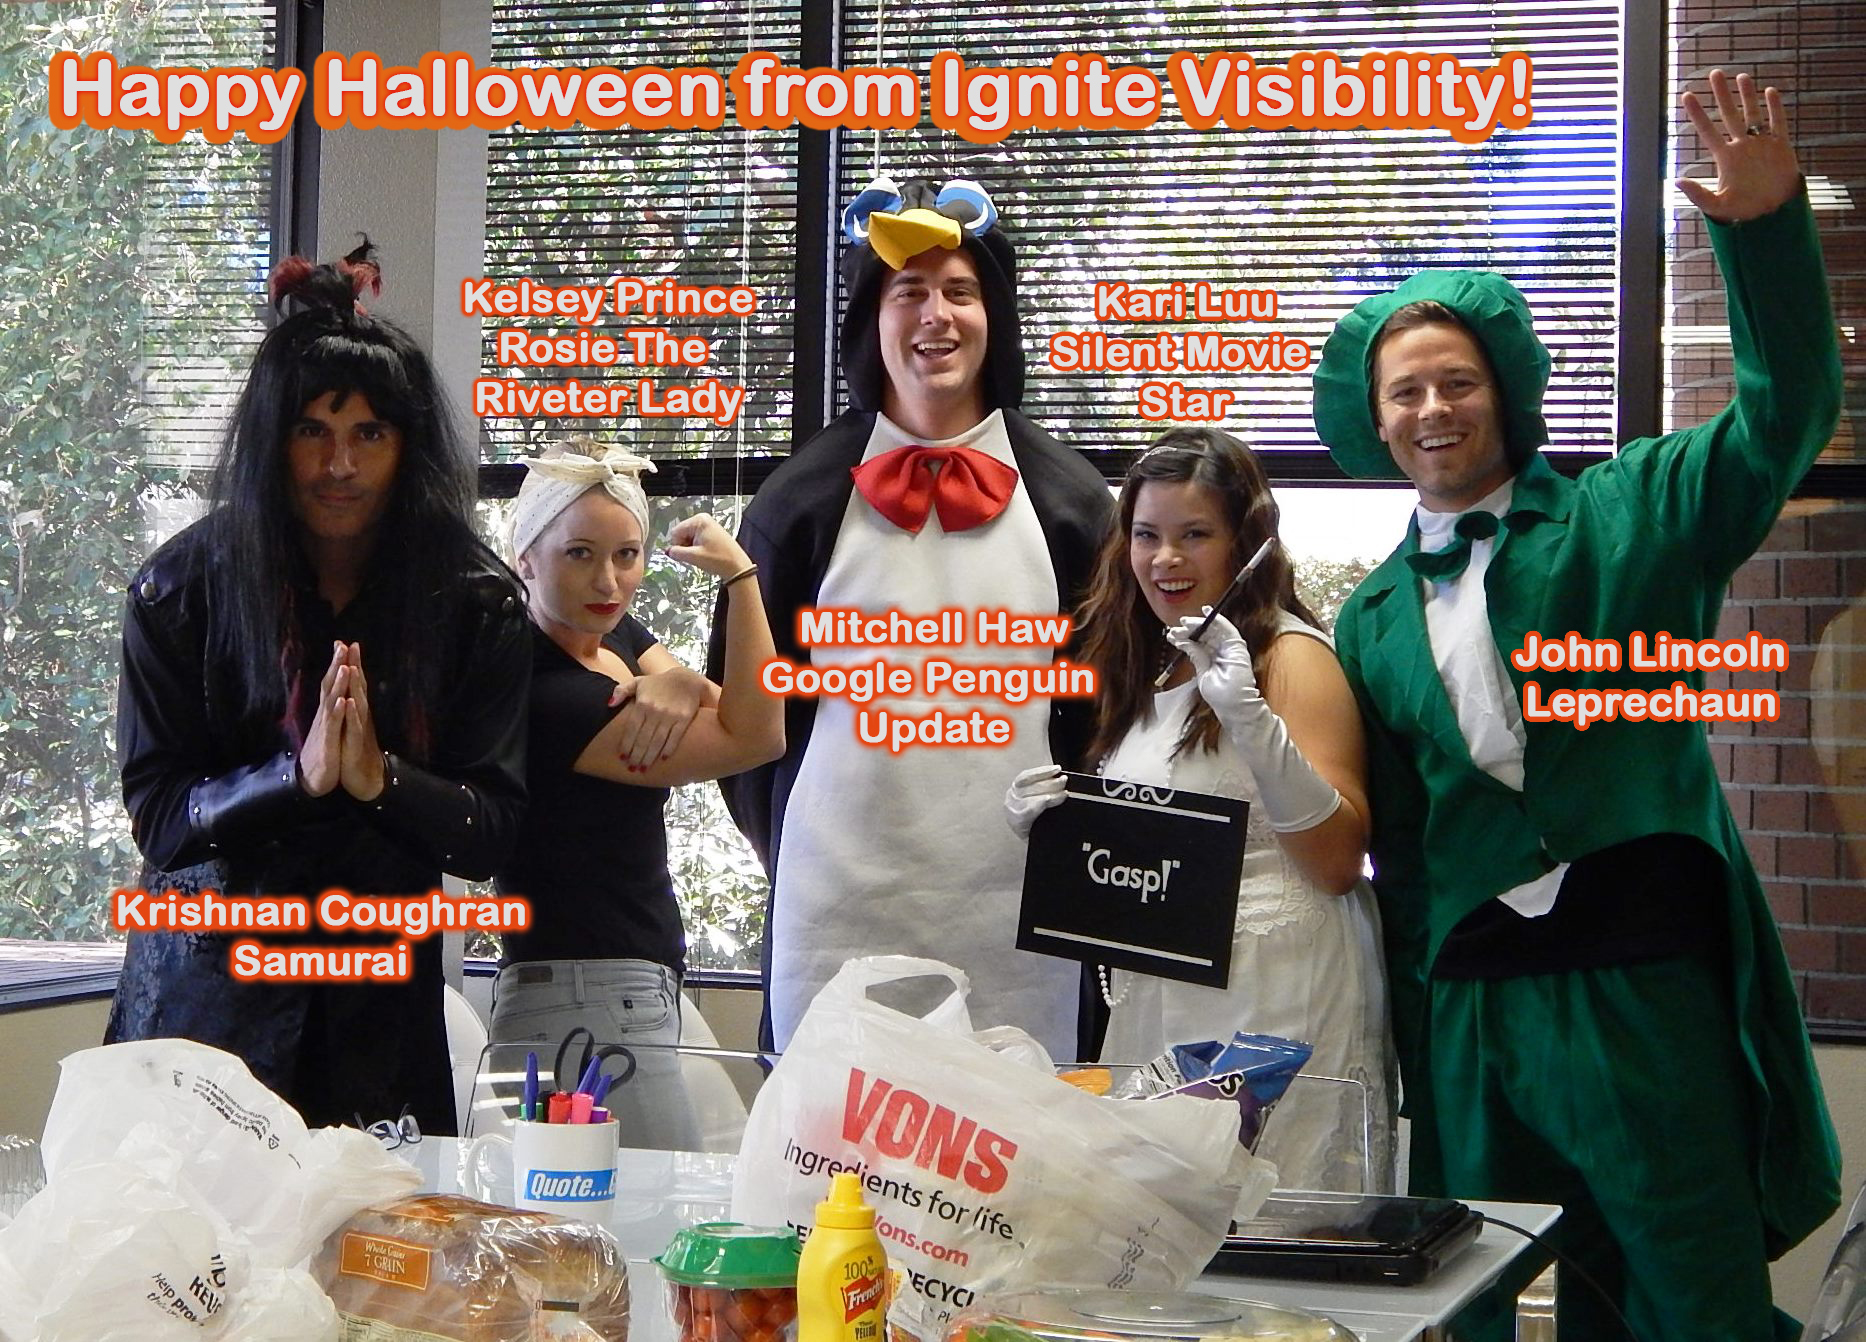 Happy Halloween Ignite Visibility